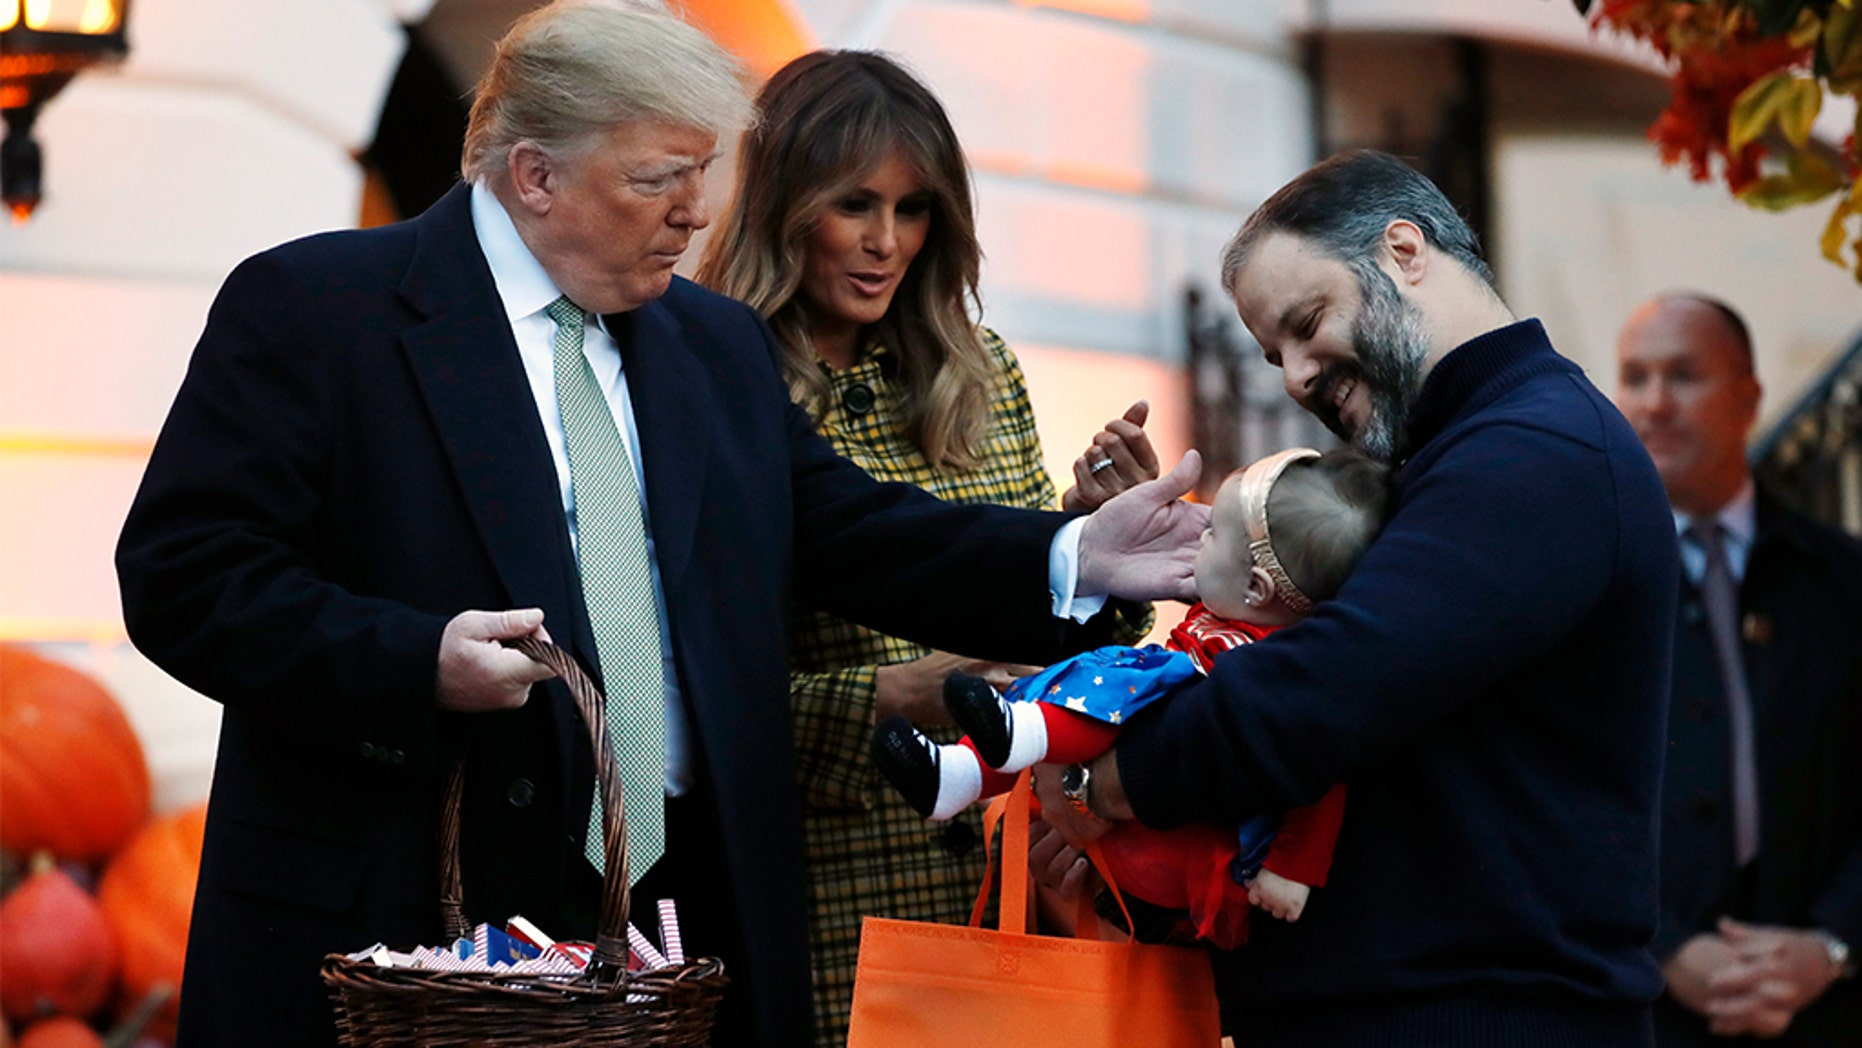 President Donald Trump and first lady Melania Trump greeting a baby in a superhero costume as they hand out candy to children during a Halloween trick-or-treat event at the White House.